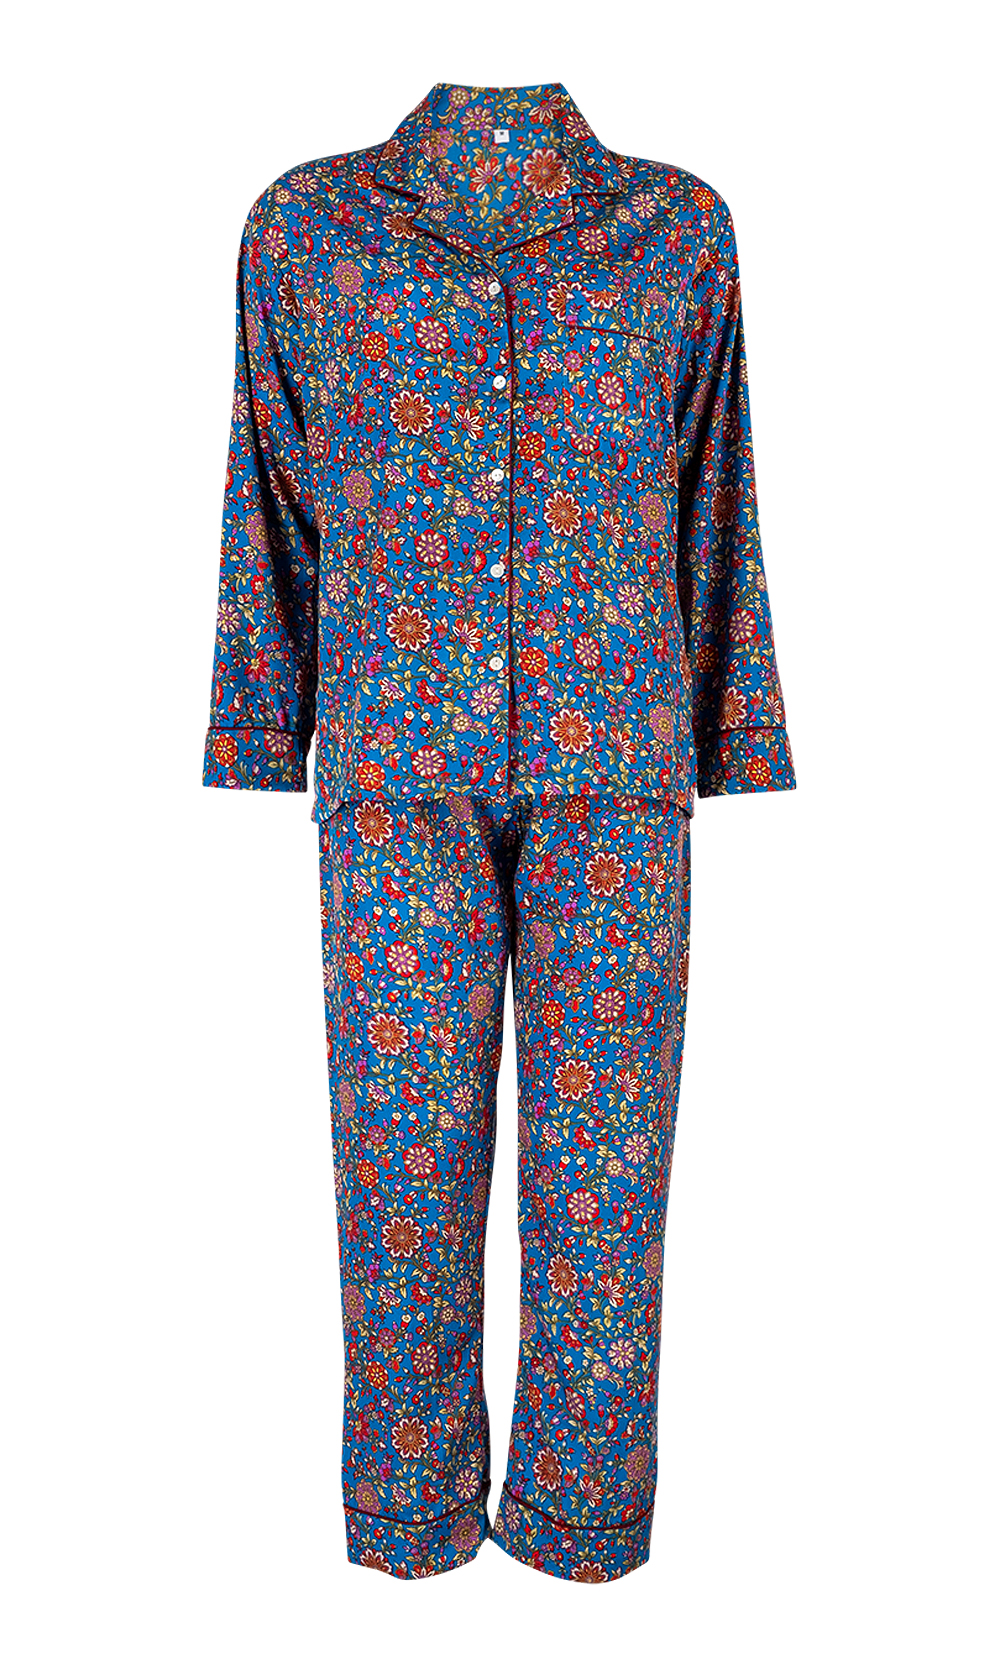 Blue Luxurious Sleepwear & Pyjamas Set - Set